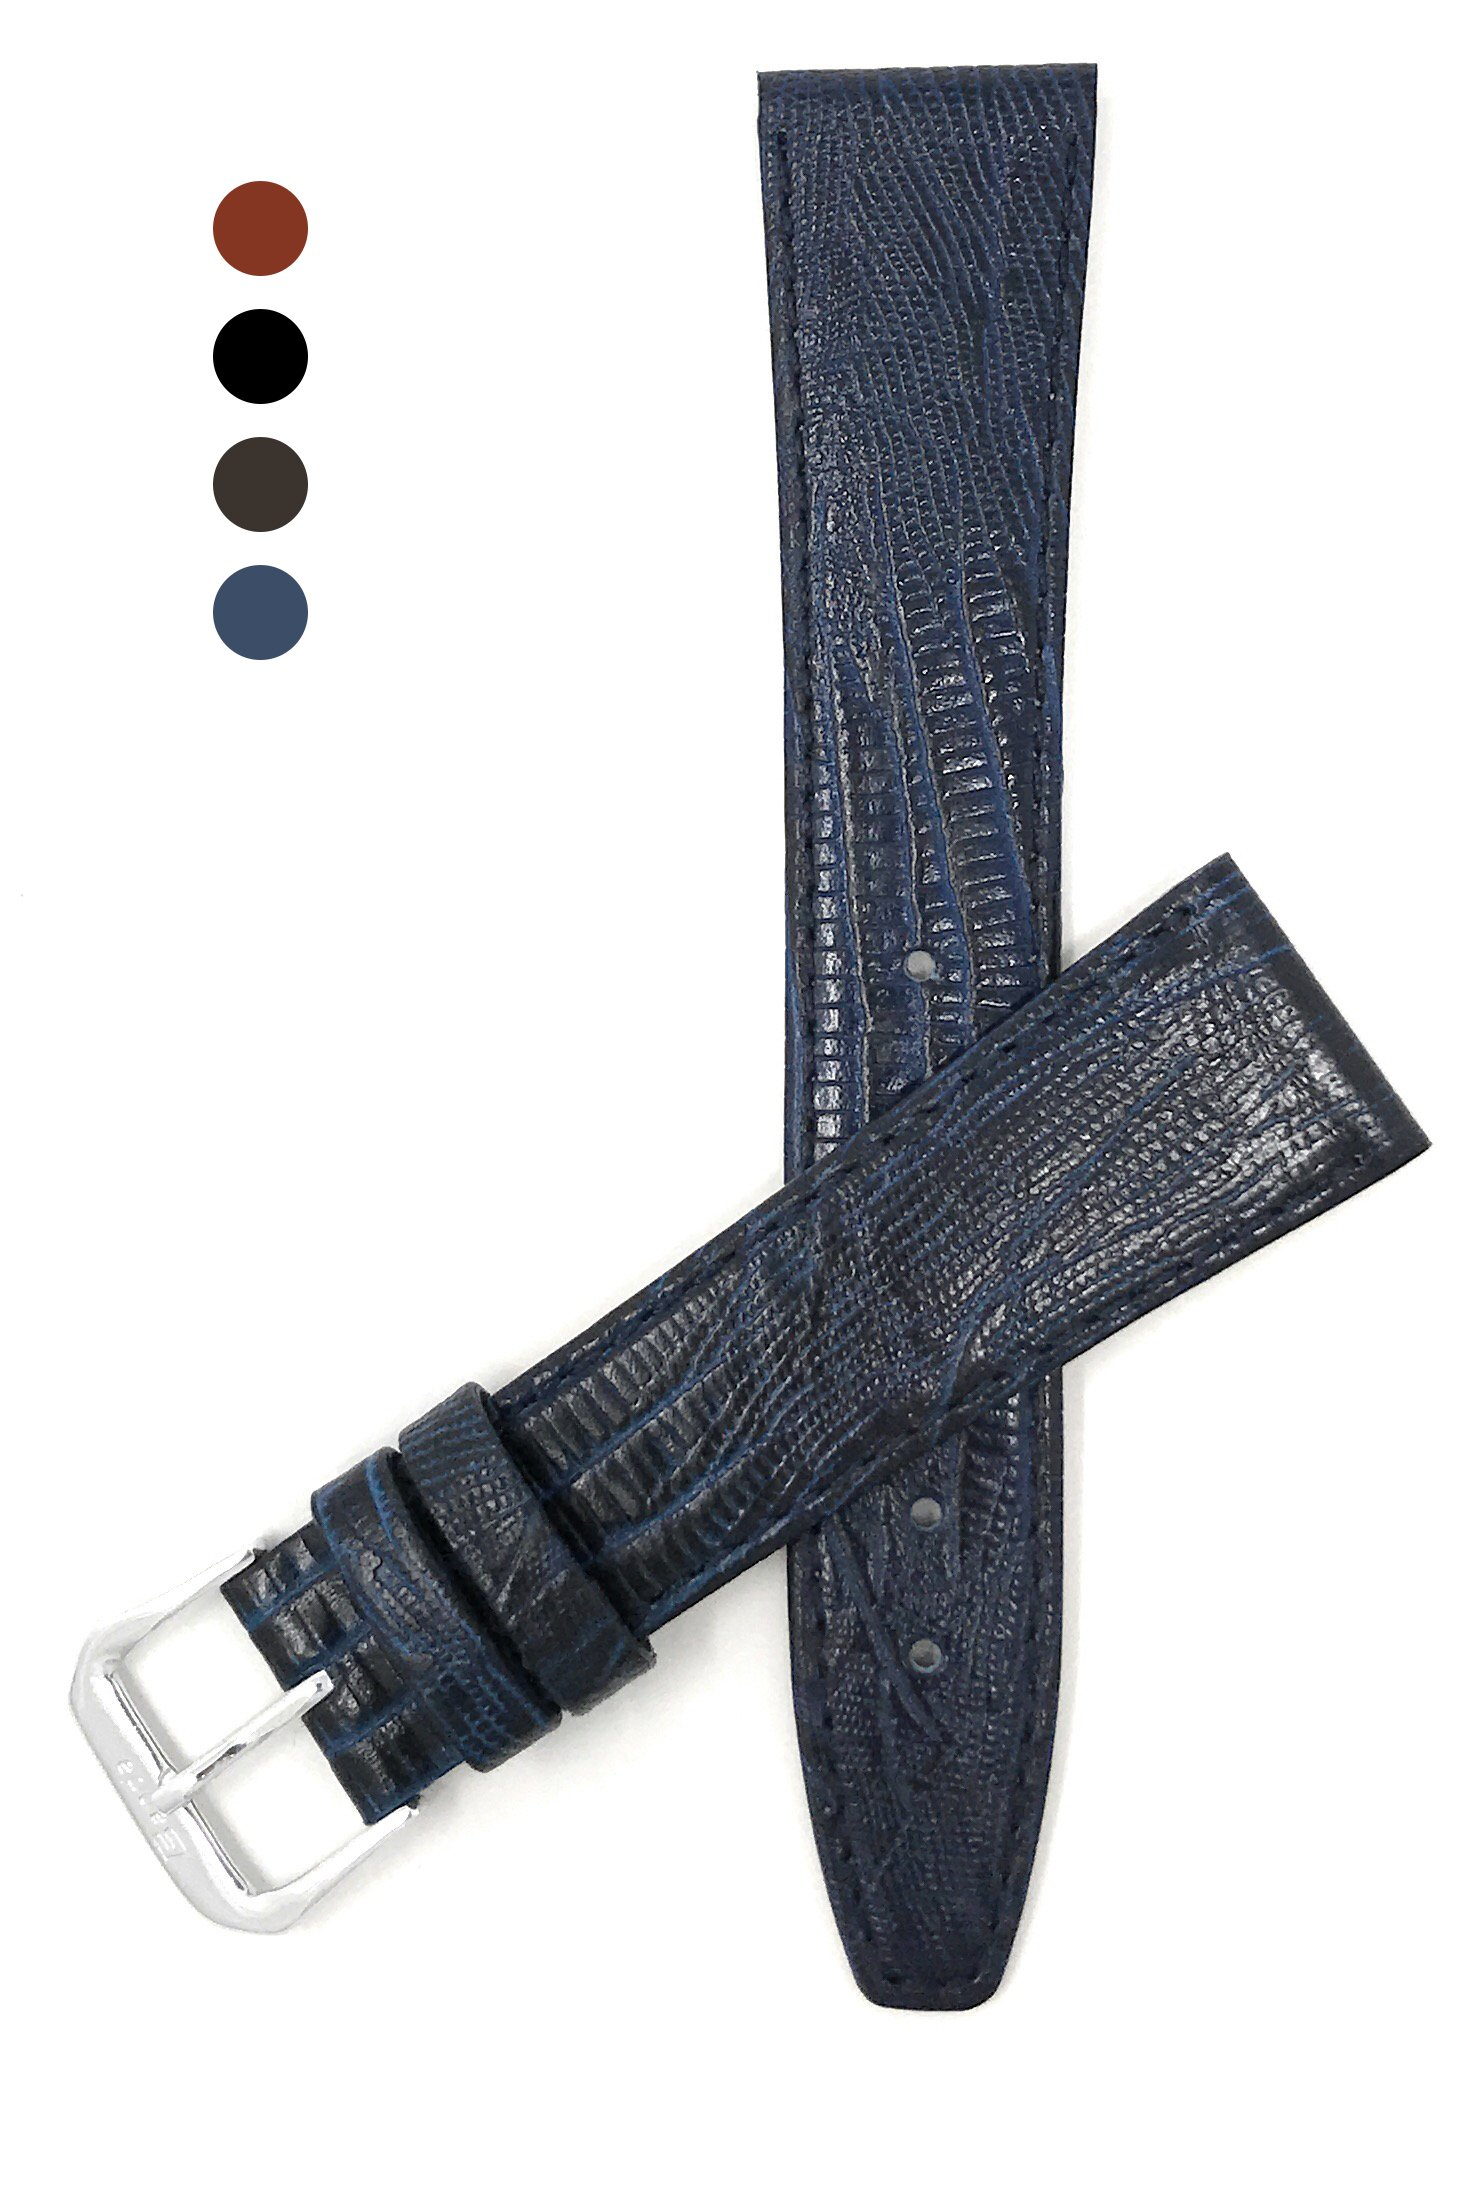 12mm, Blue Womens', Slim, Lizard Style, Genuine Leather Watch Band Strap, Also Comes in Black, Brown and Tan